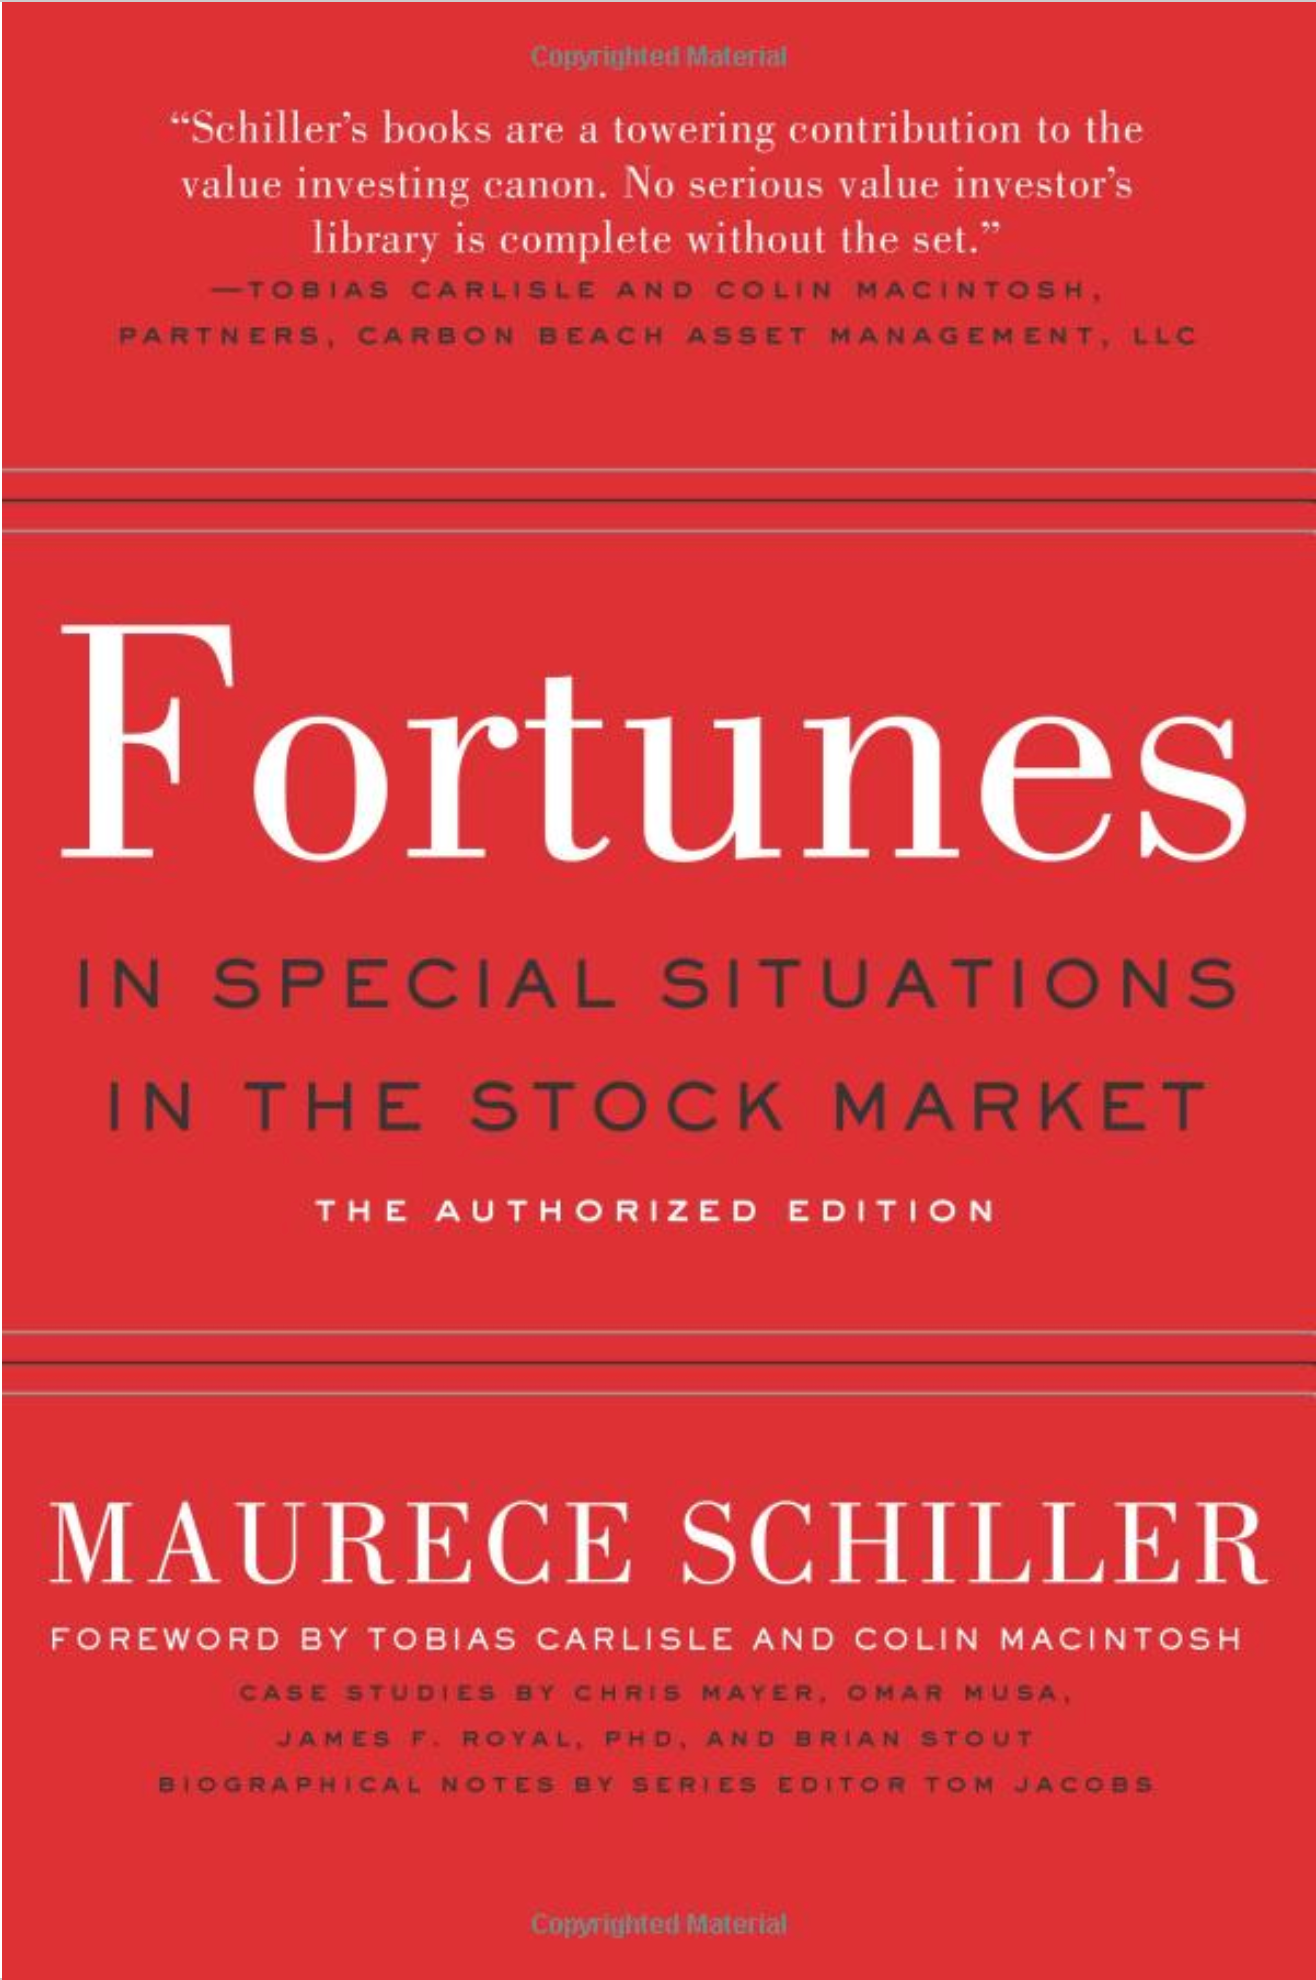 Maurece Schiller's Fortunes in Special Situations in the Stock